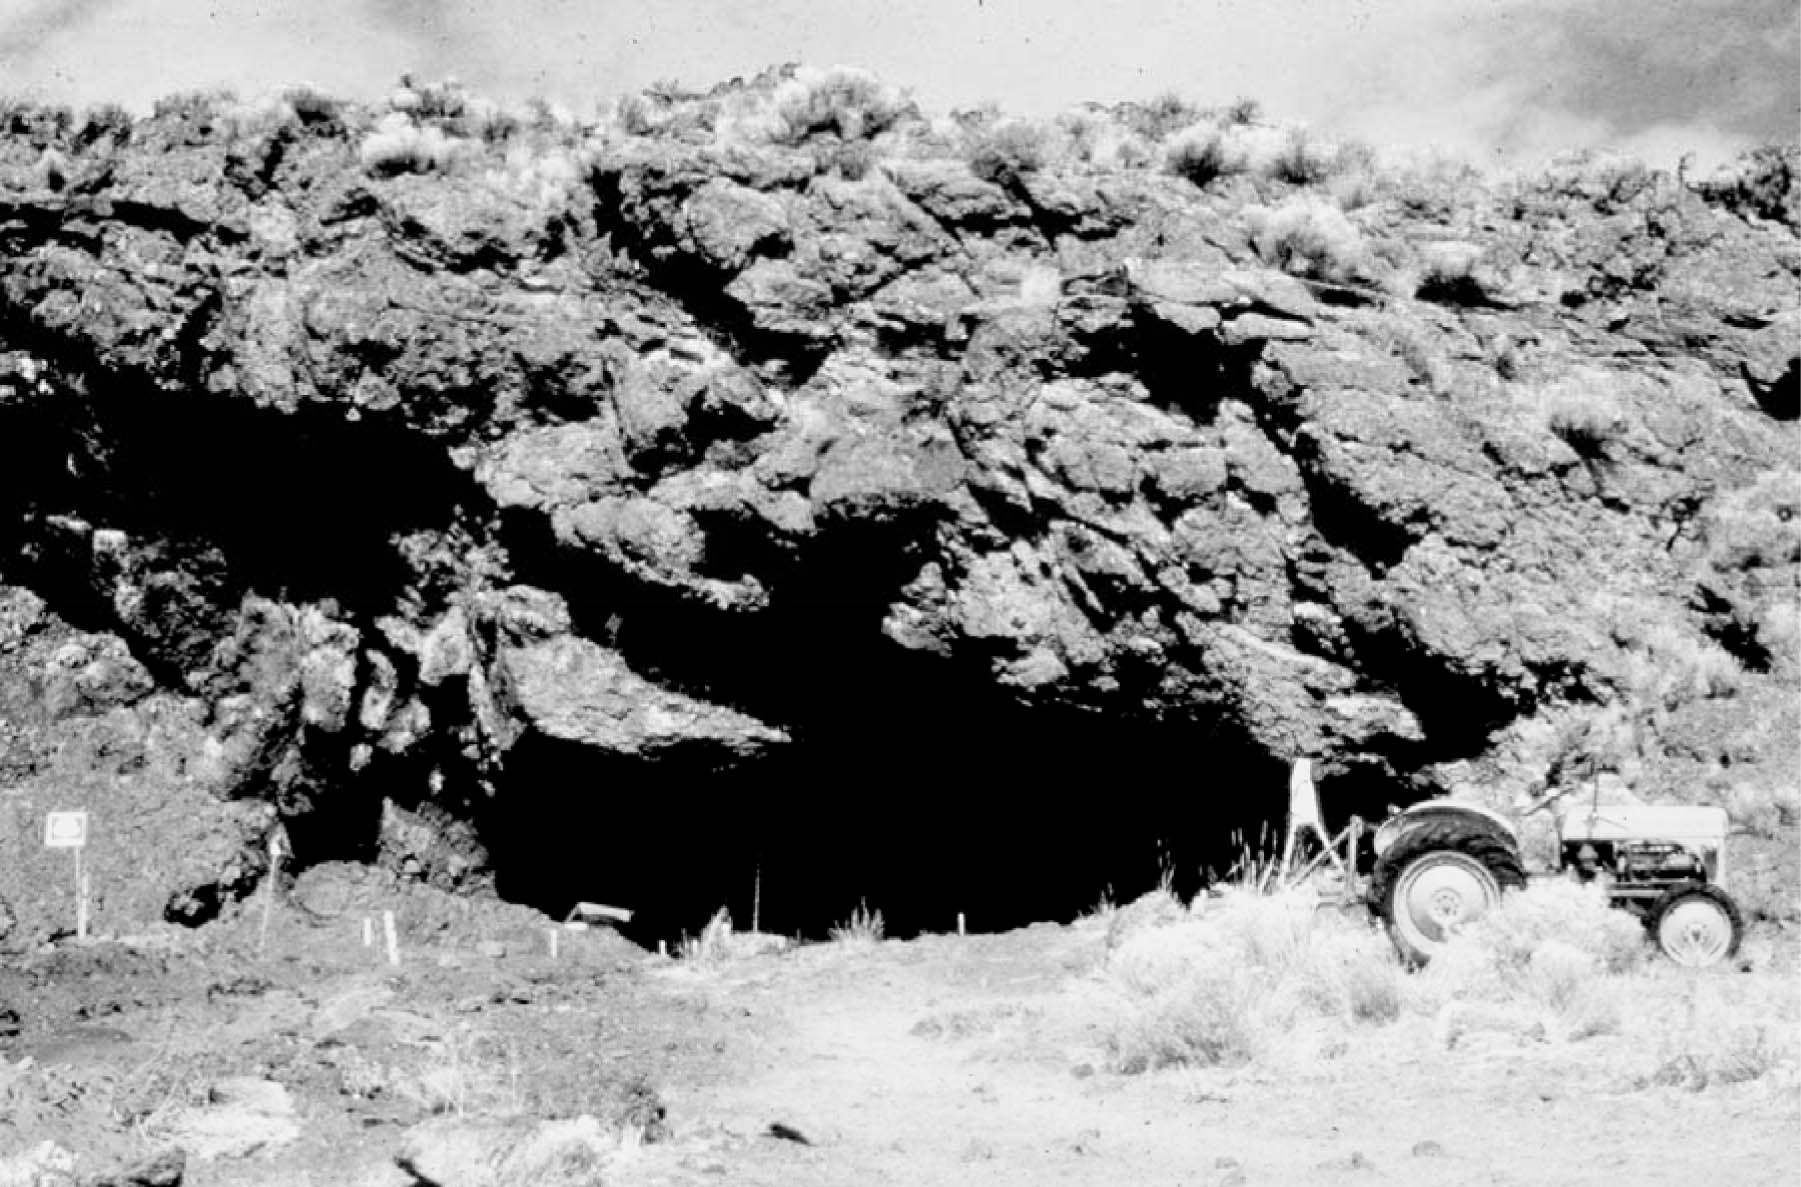 Fort Rock Cave, c. 1966